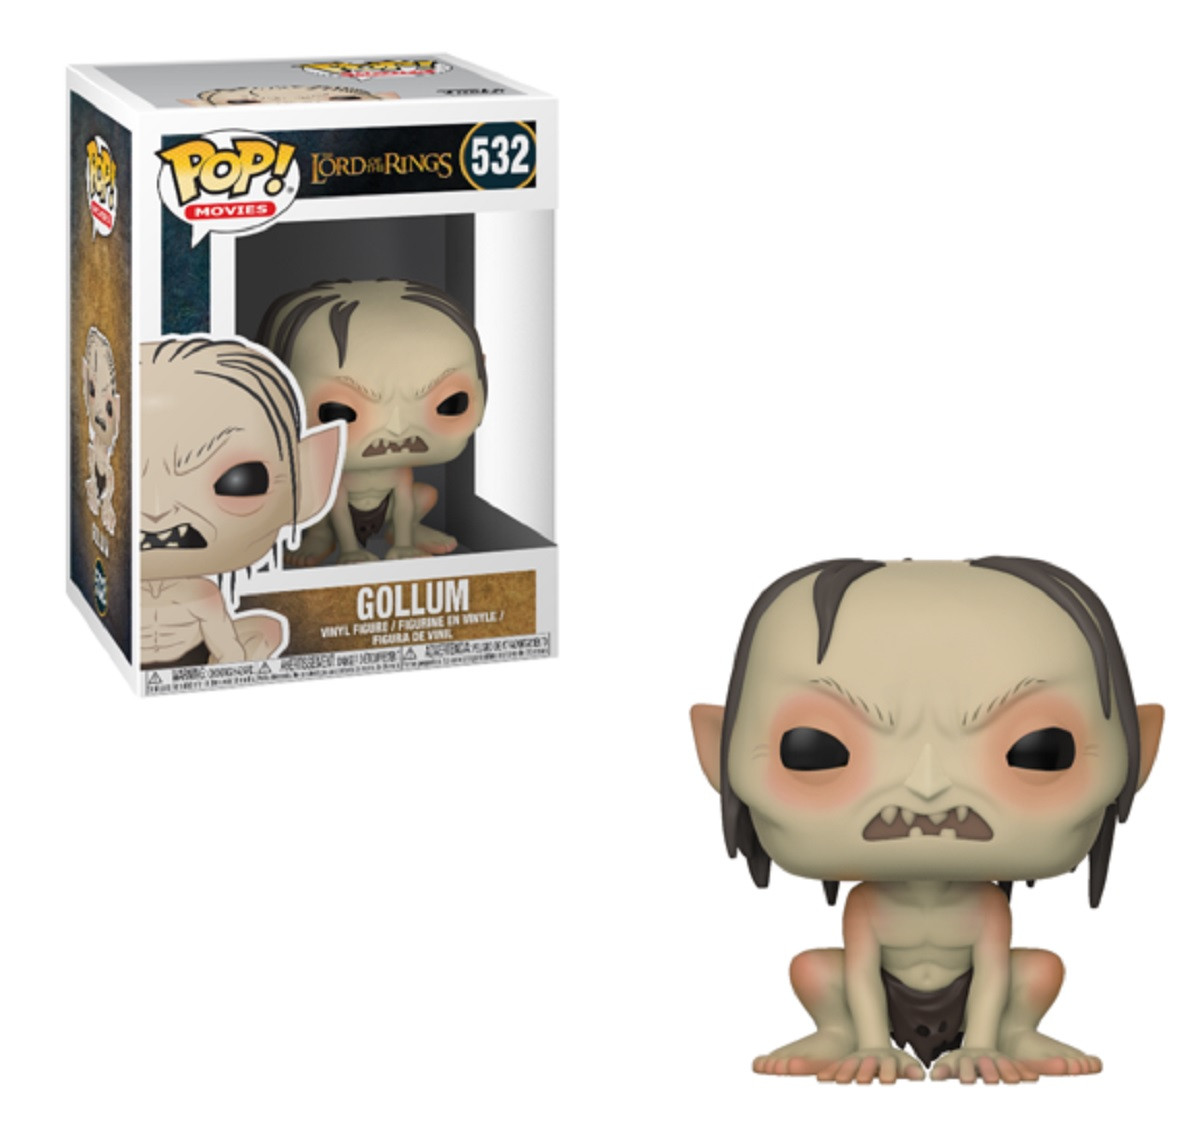 Funko Pop! Movies Lord f the Rings Hobbit Gollum Vinyl Figure